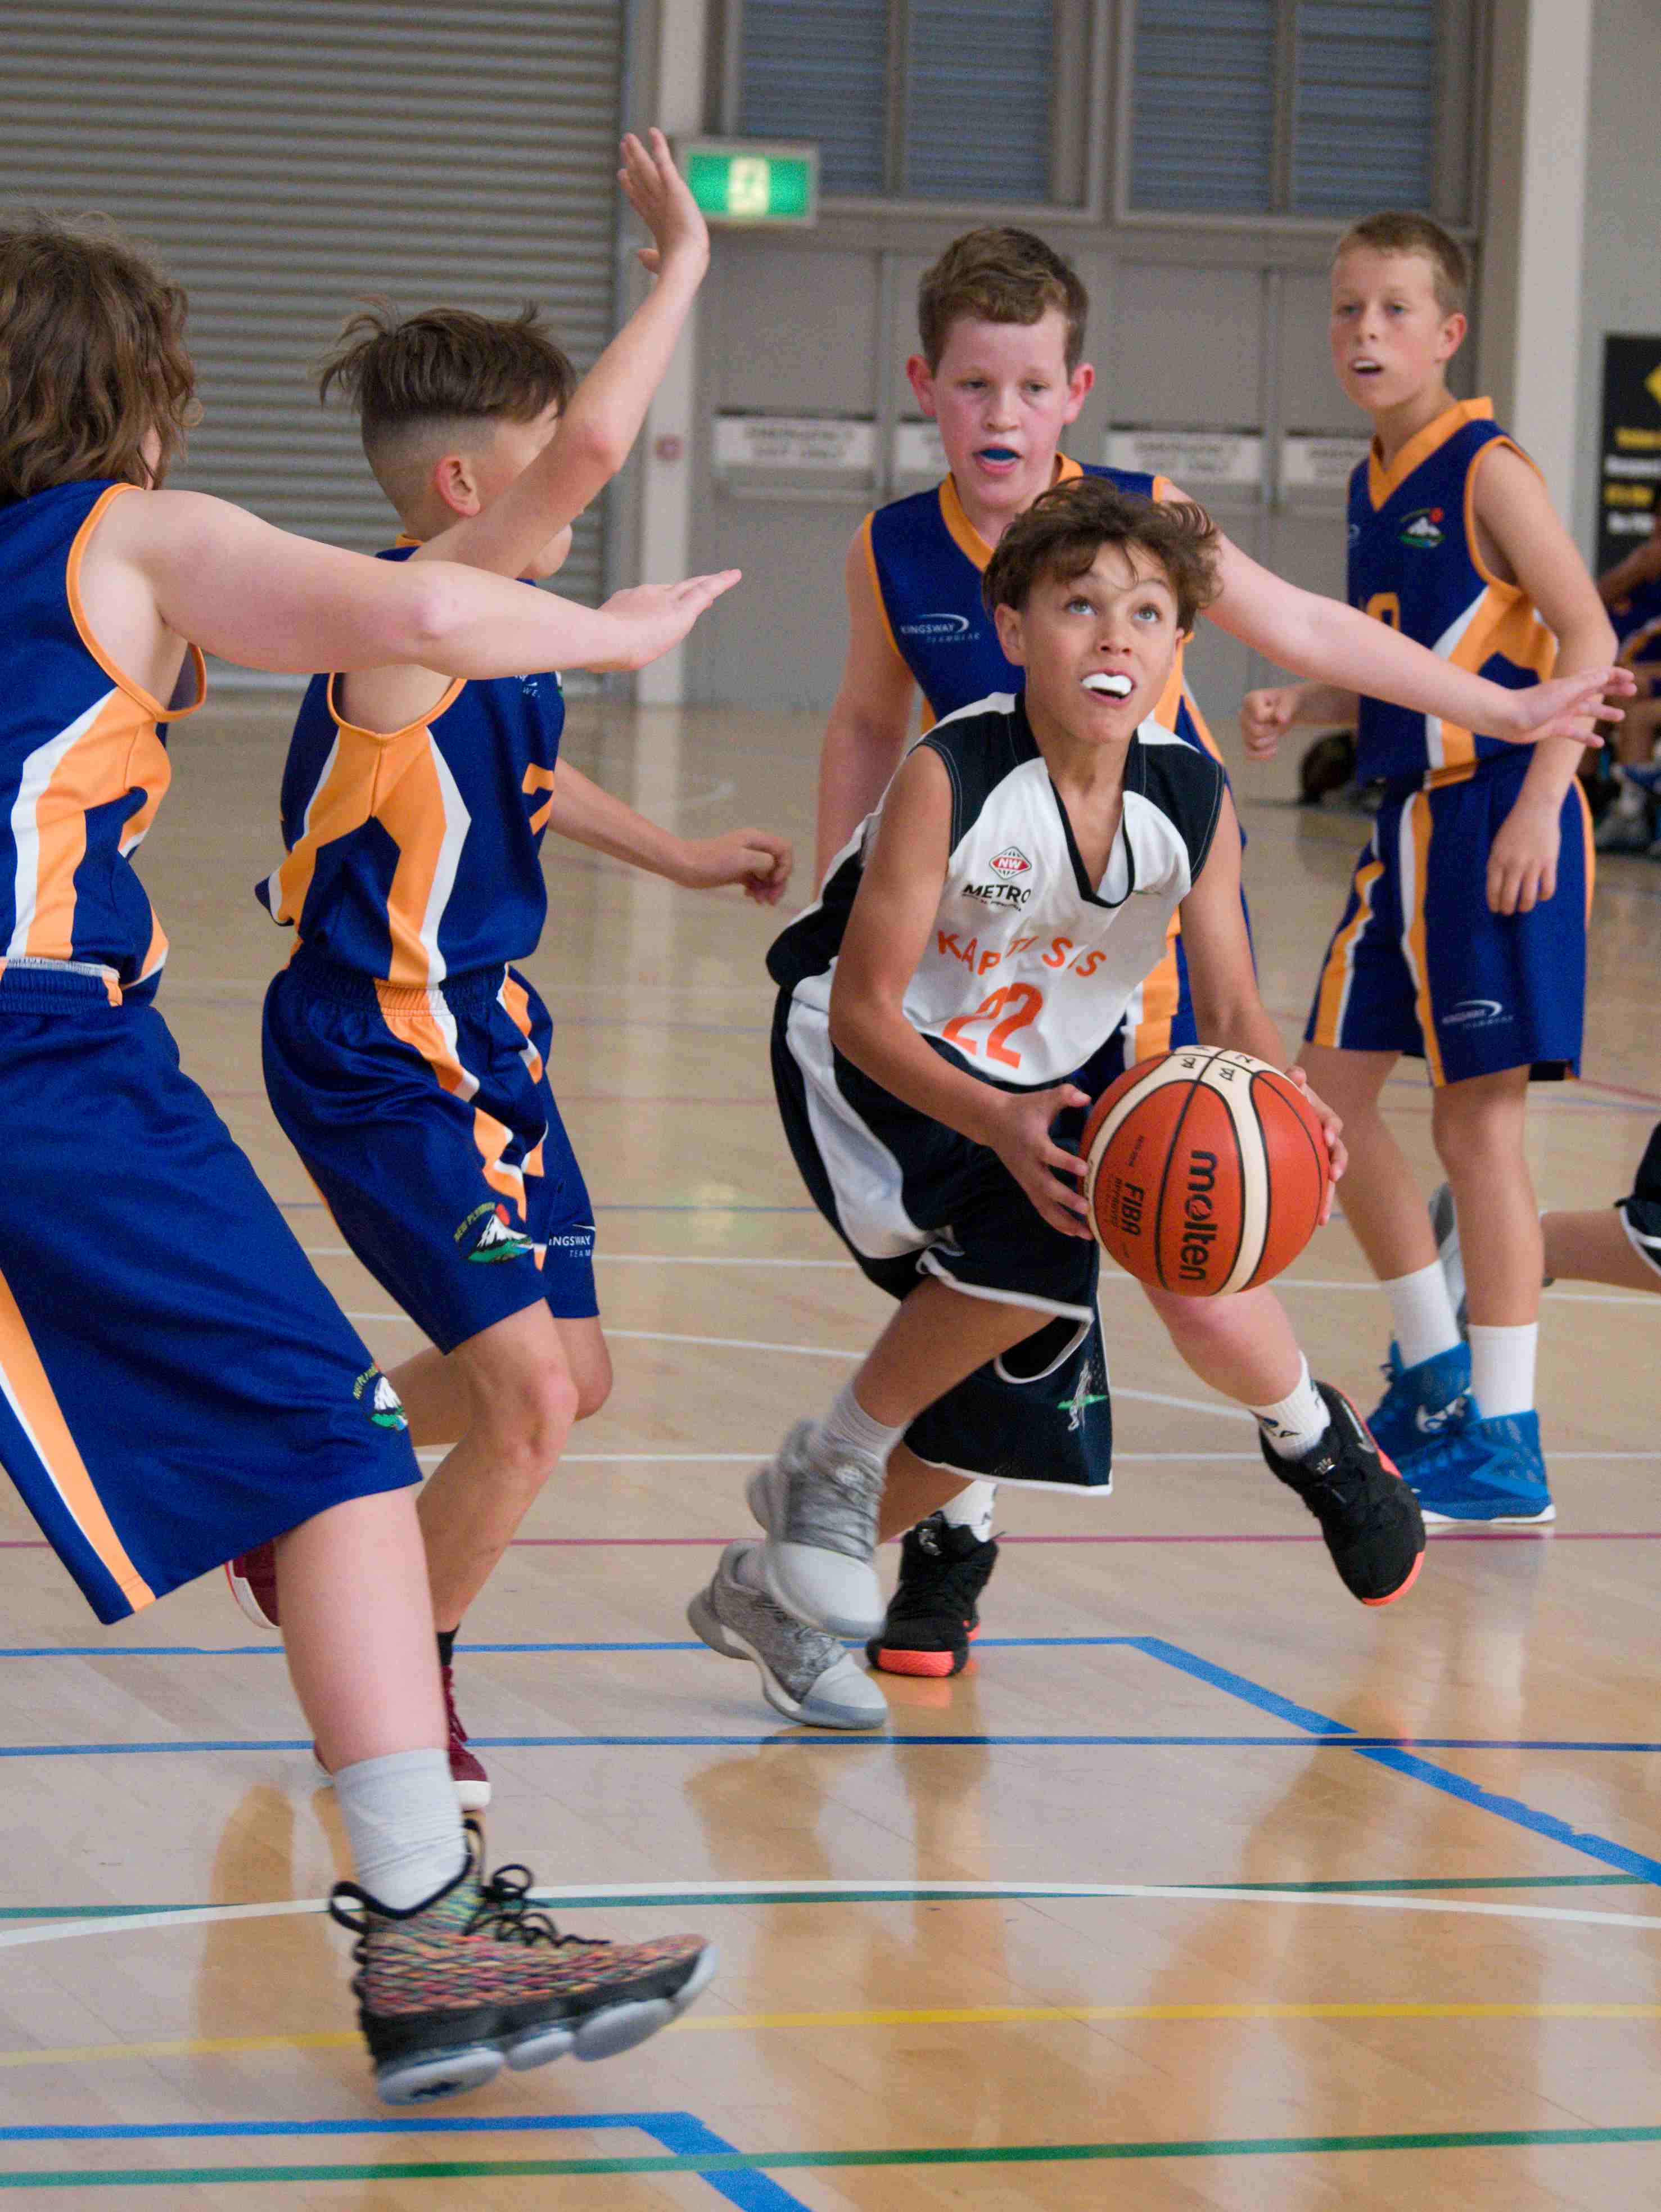 u13 team in action